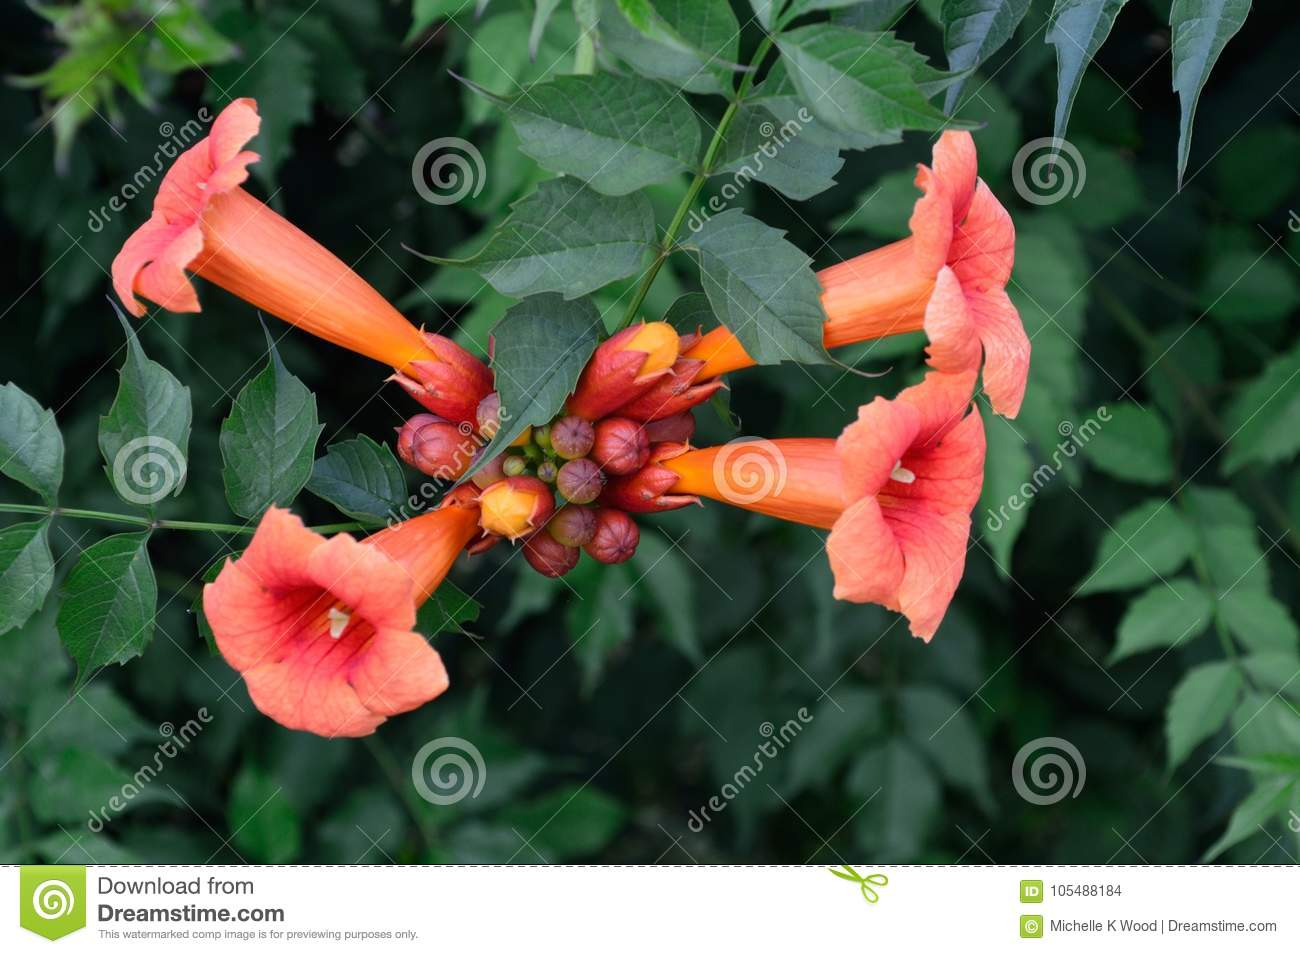 Trumpet Vine flowers and buds